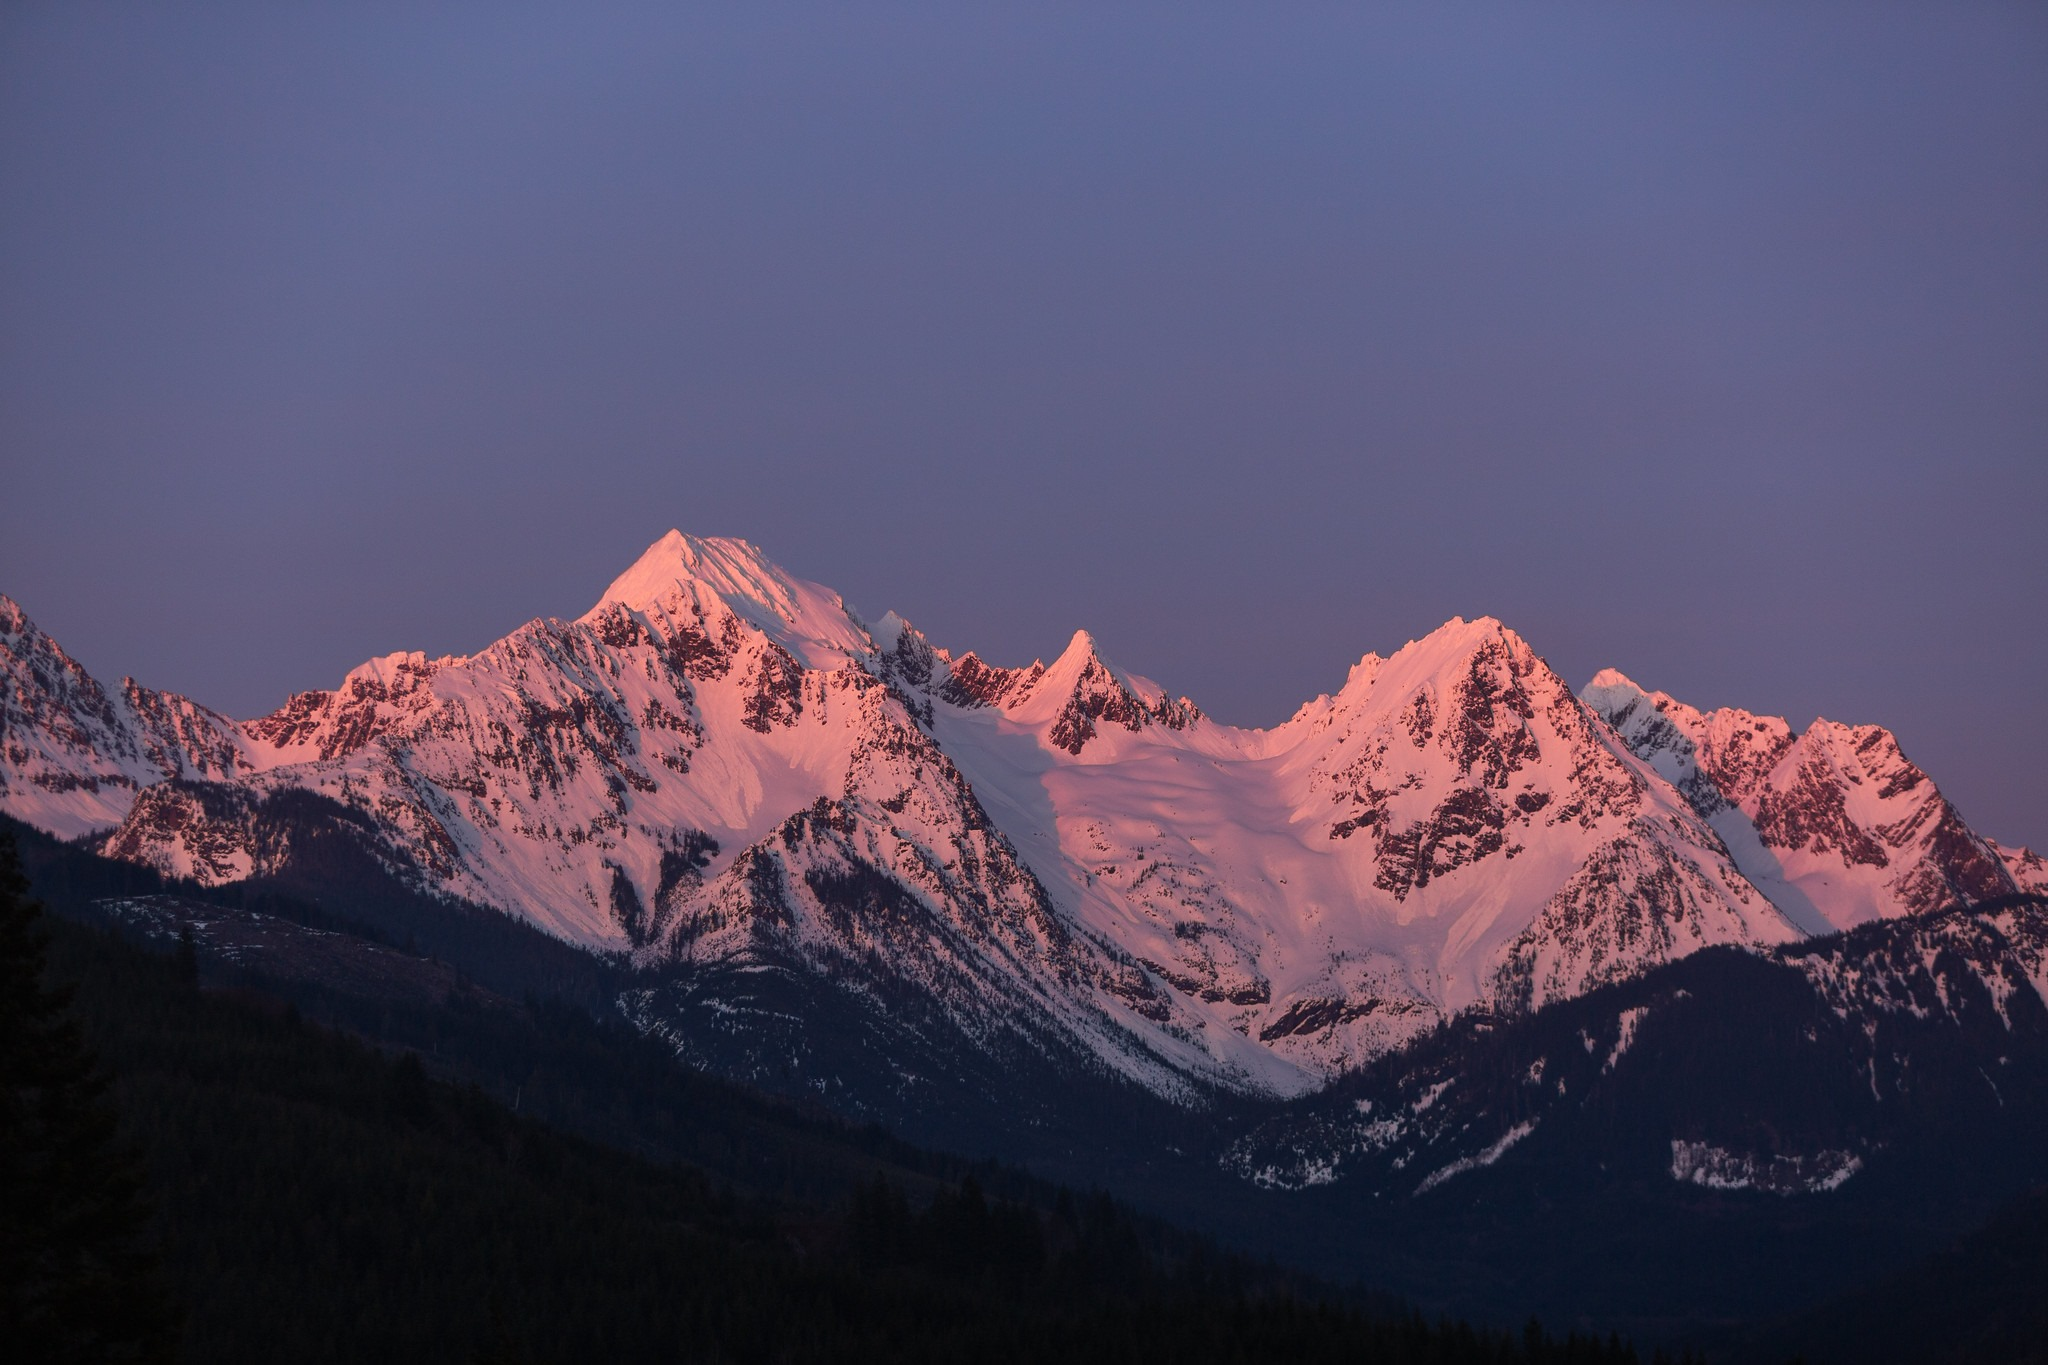 Alpine glow on mountain range at sunset